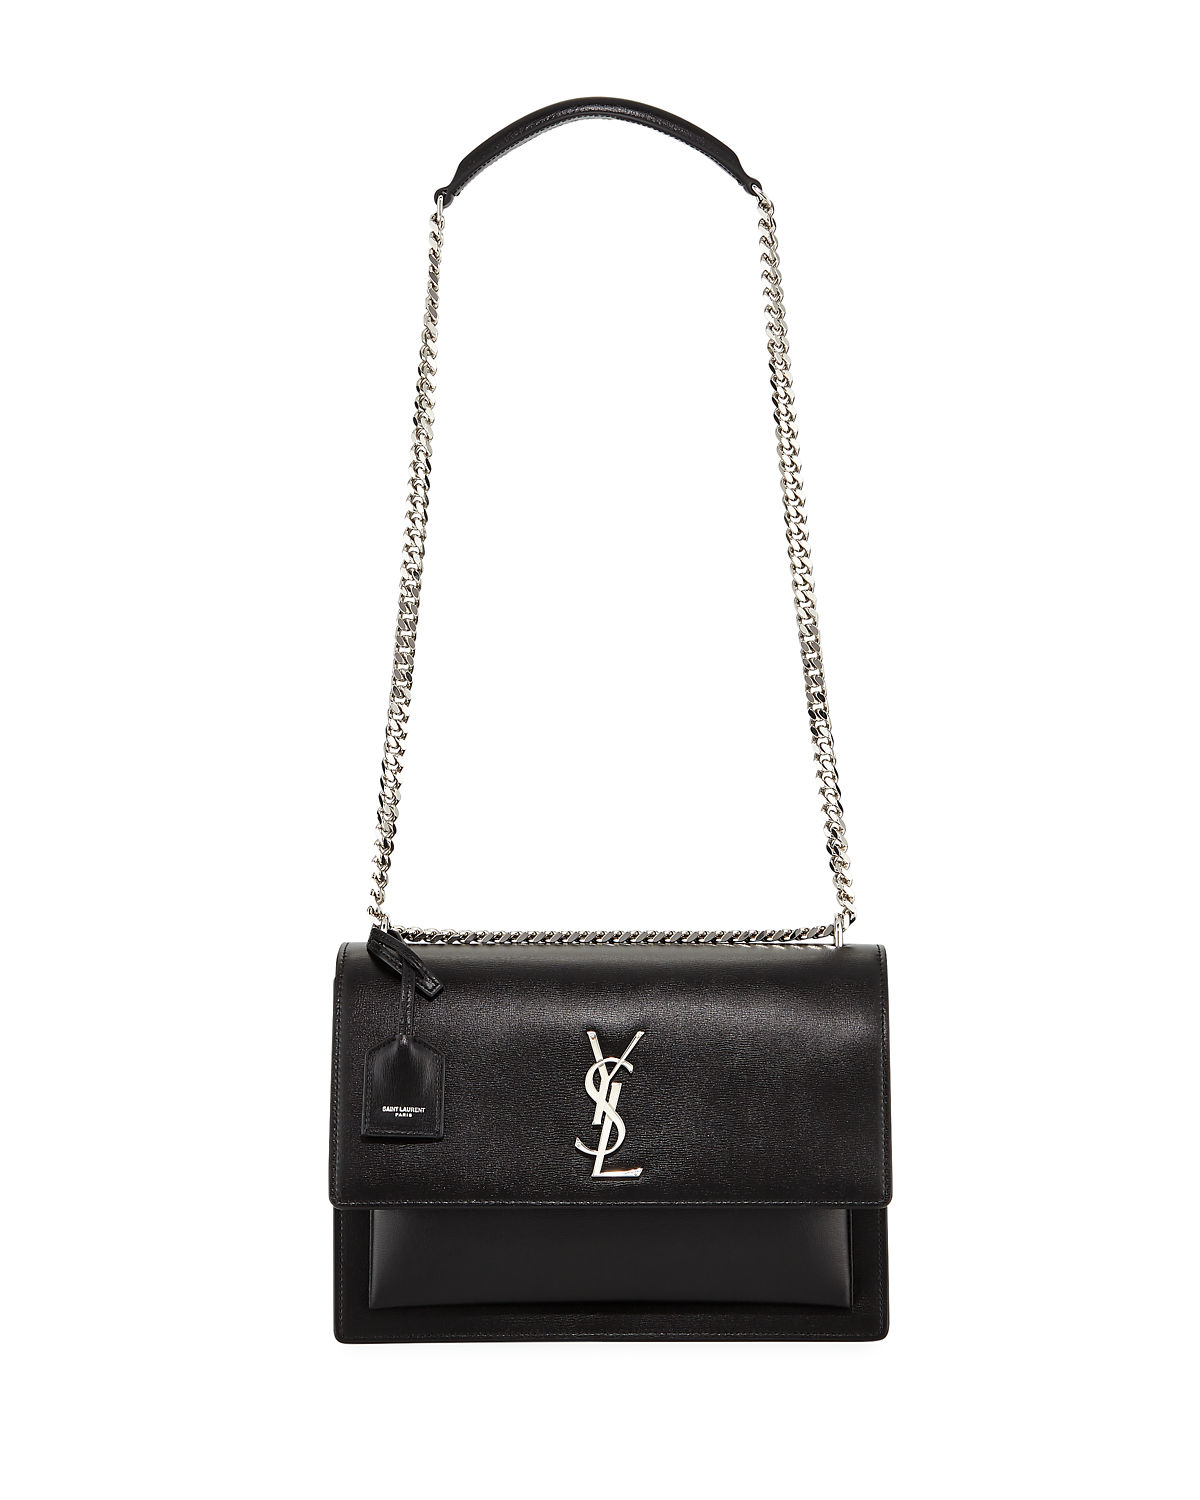 0cb312fd13c Saint Laurent Sunset Large Monogram YSL Shoulder Bag | Neiman Marcus